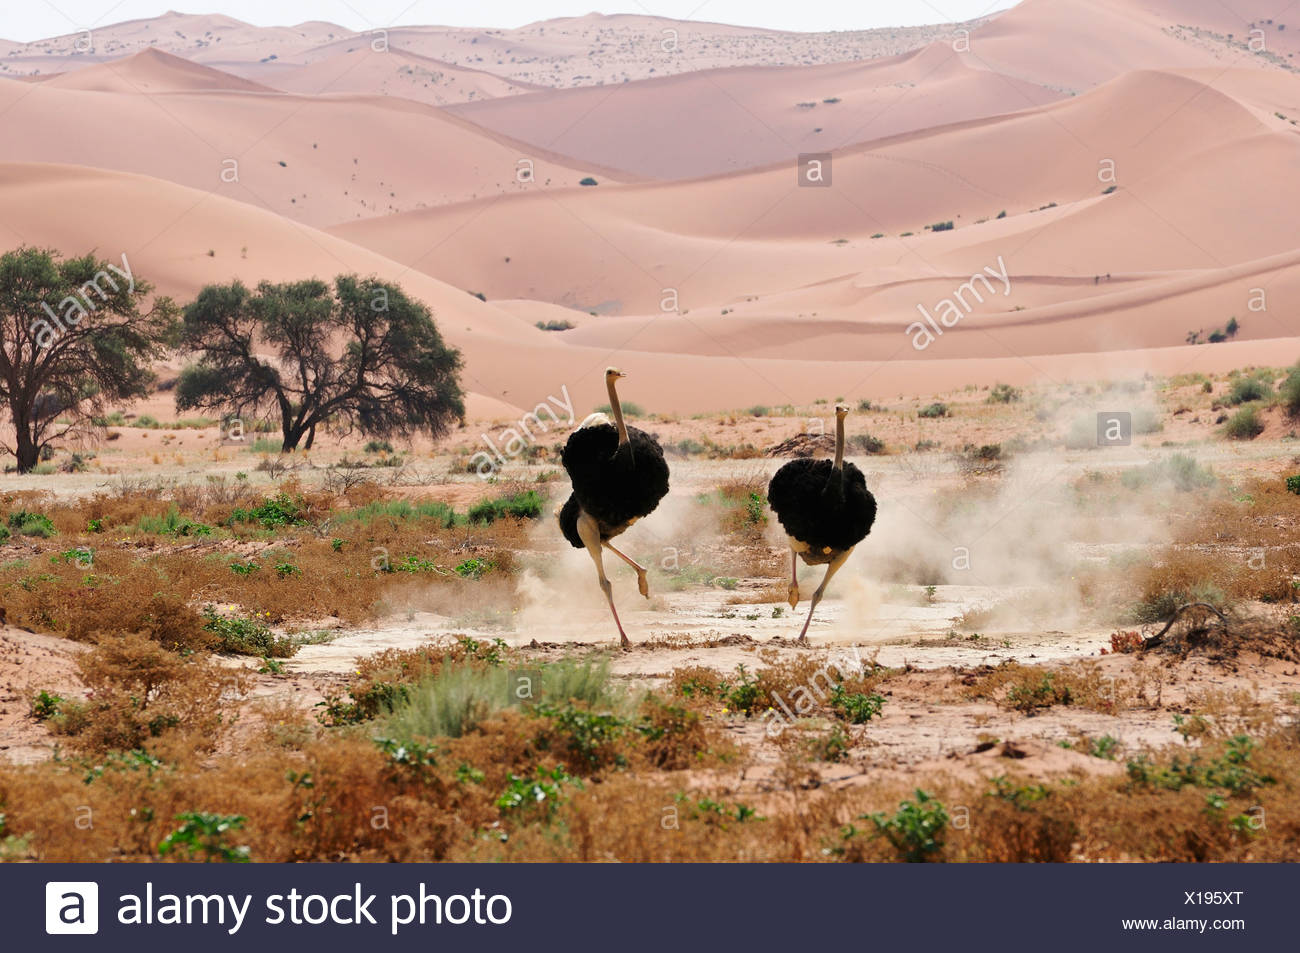 Africa colline Dune Namib Naukluft Park Namibia Sossusvlei paura carica africana orizzontale uccello struzzo in esecuzione Immagini Stock